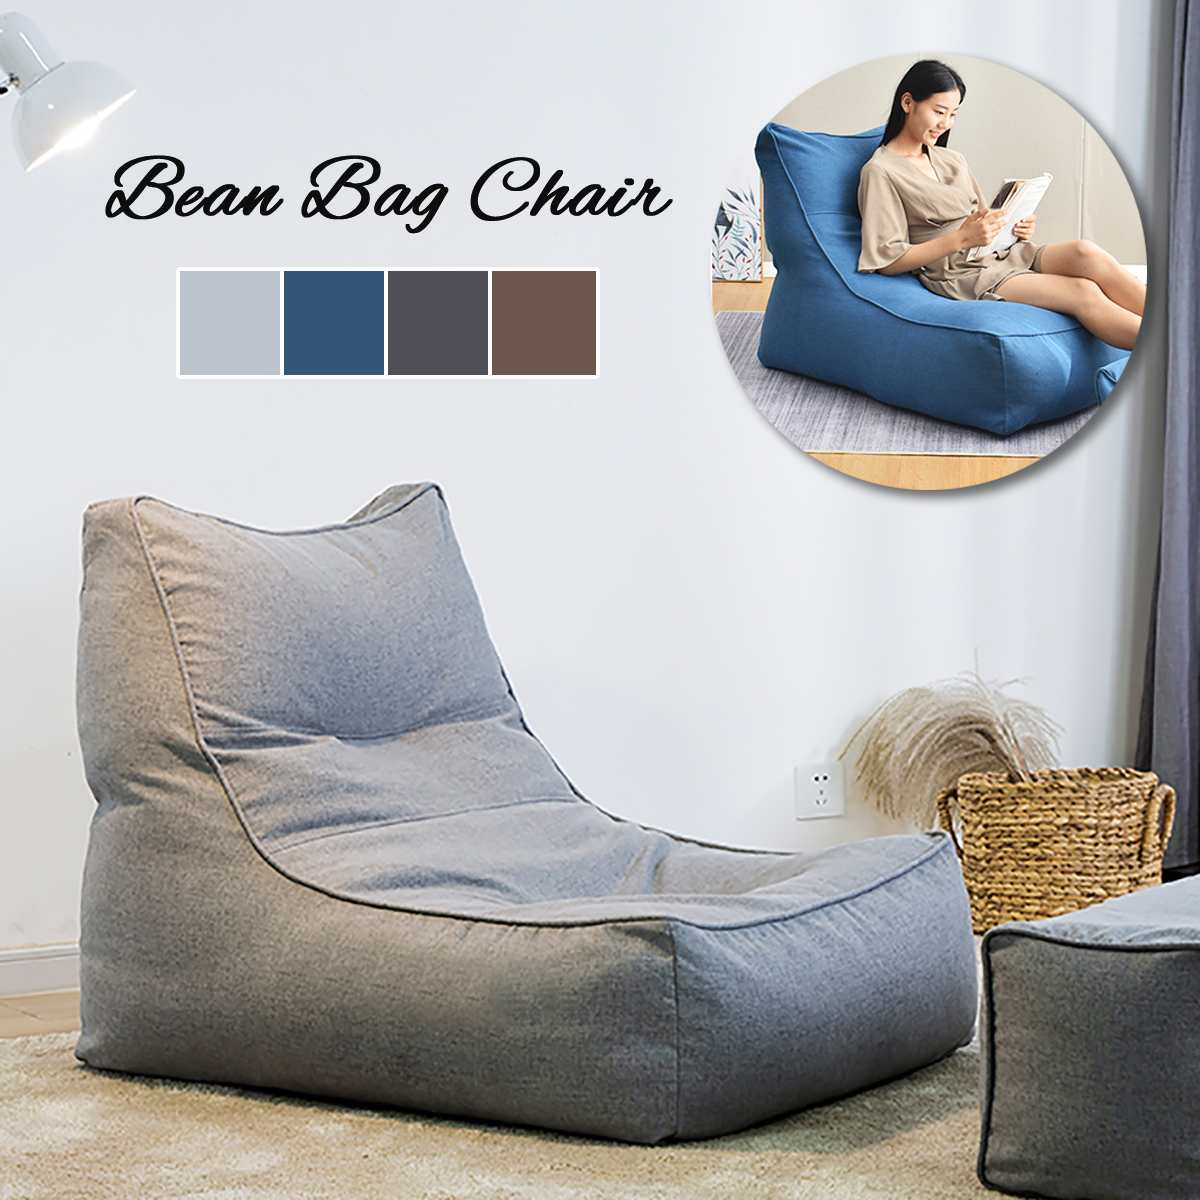 Lazy Cotton Linen Bean Bag Chair Sofa Cover No Filling in Solid Colors Lounger Seat Pouf Puff Couch for Home Office Game PartyLazy Cotton Linen Bean Bag Chair Sofa Cover No Filling in Solid Colors Lounger Seat Pouf Puff Couch for Home Office Game Party